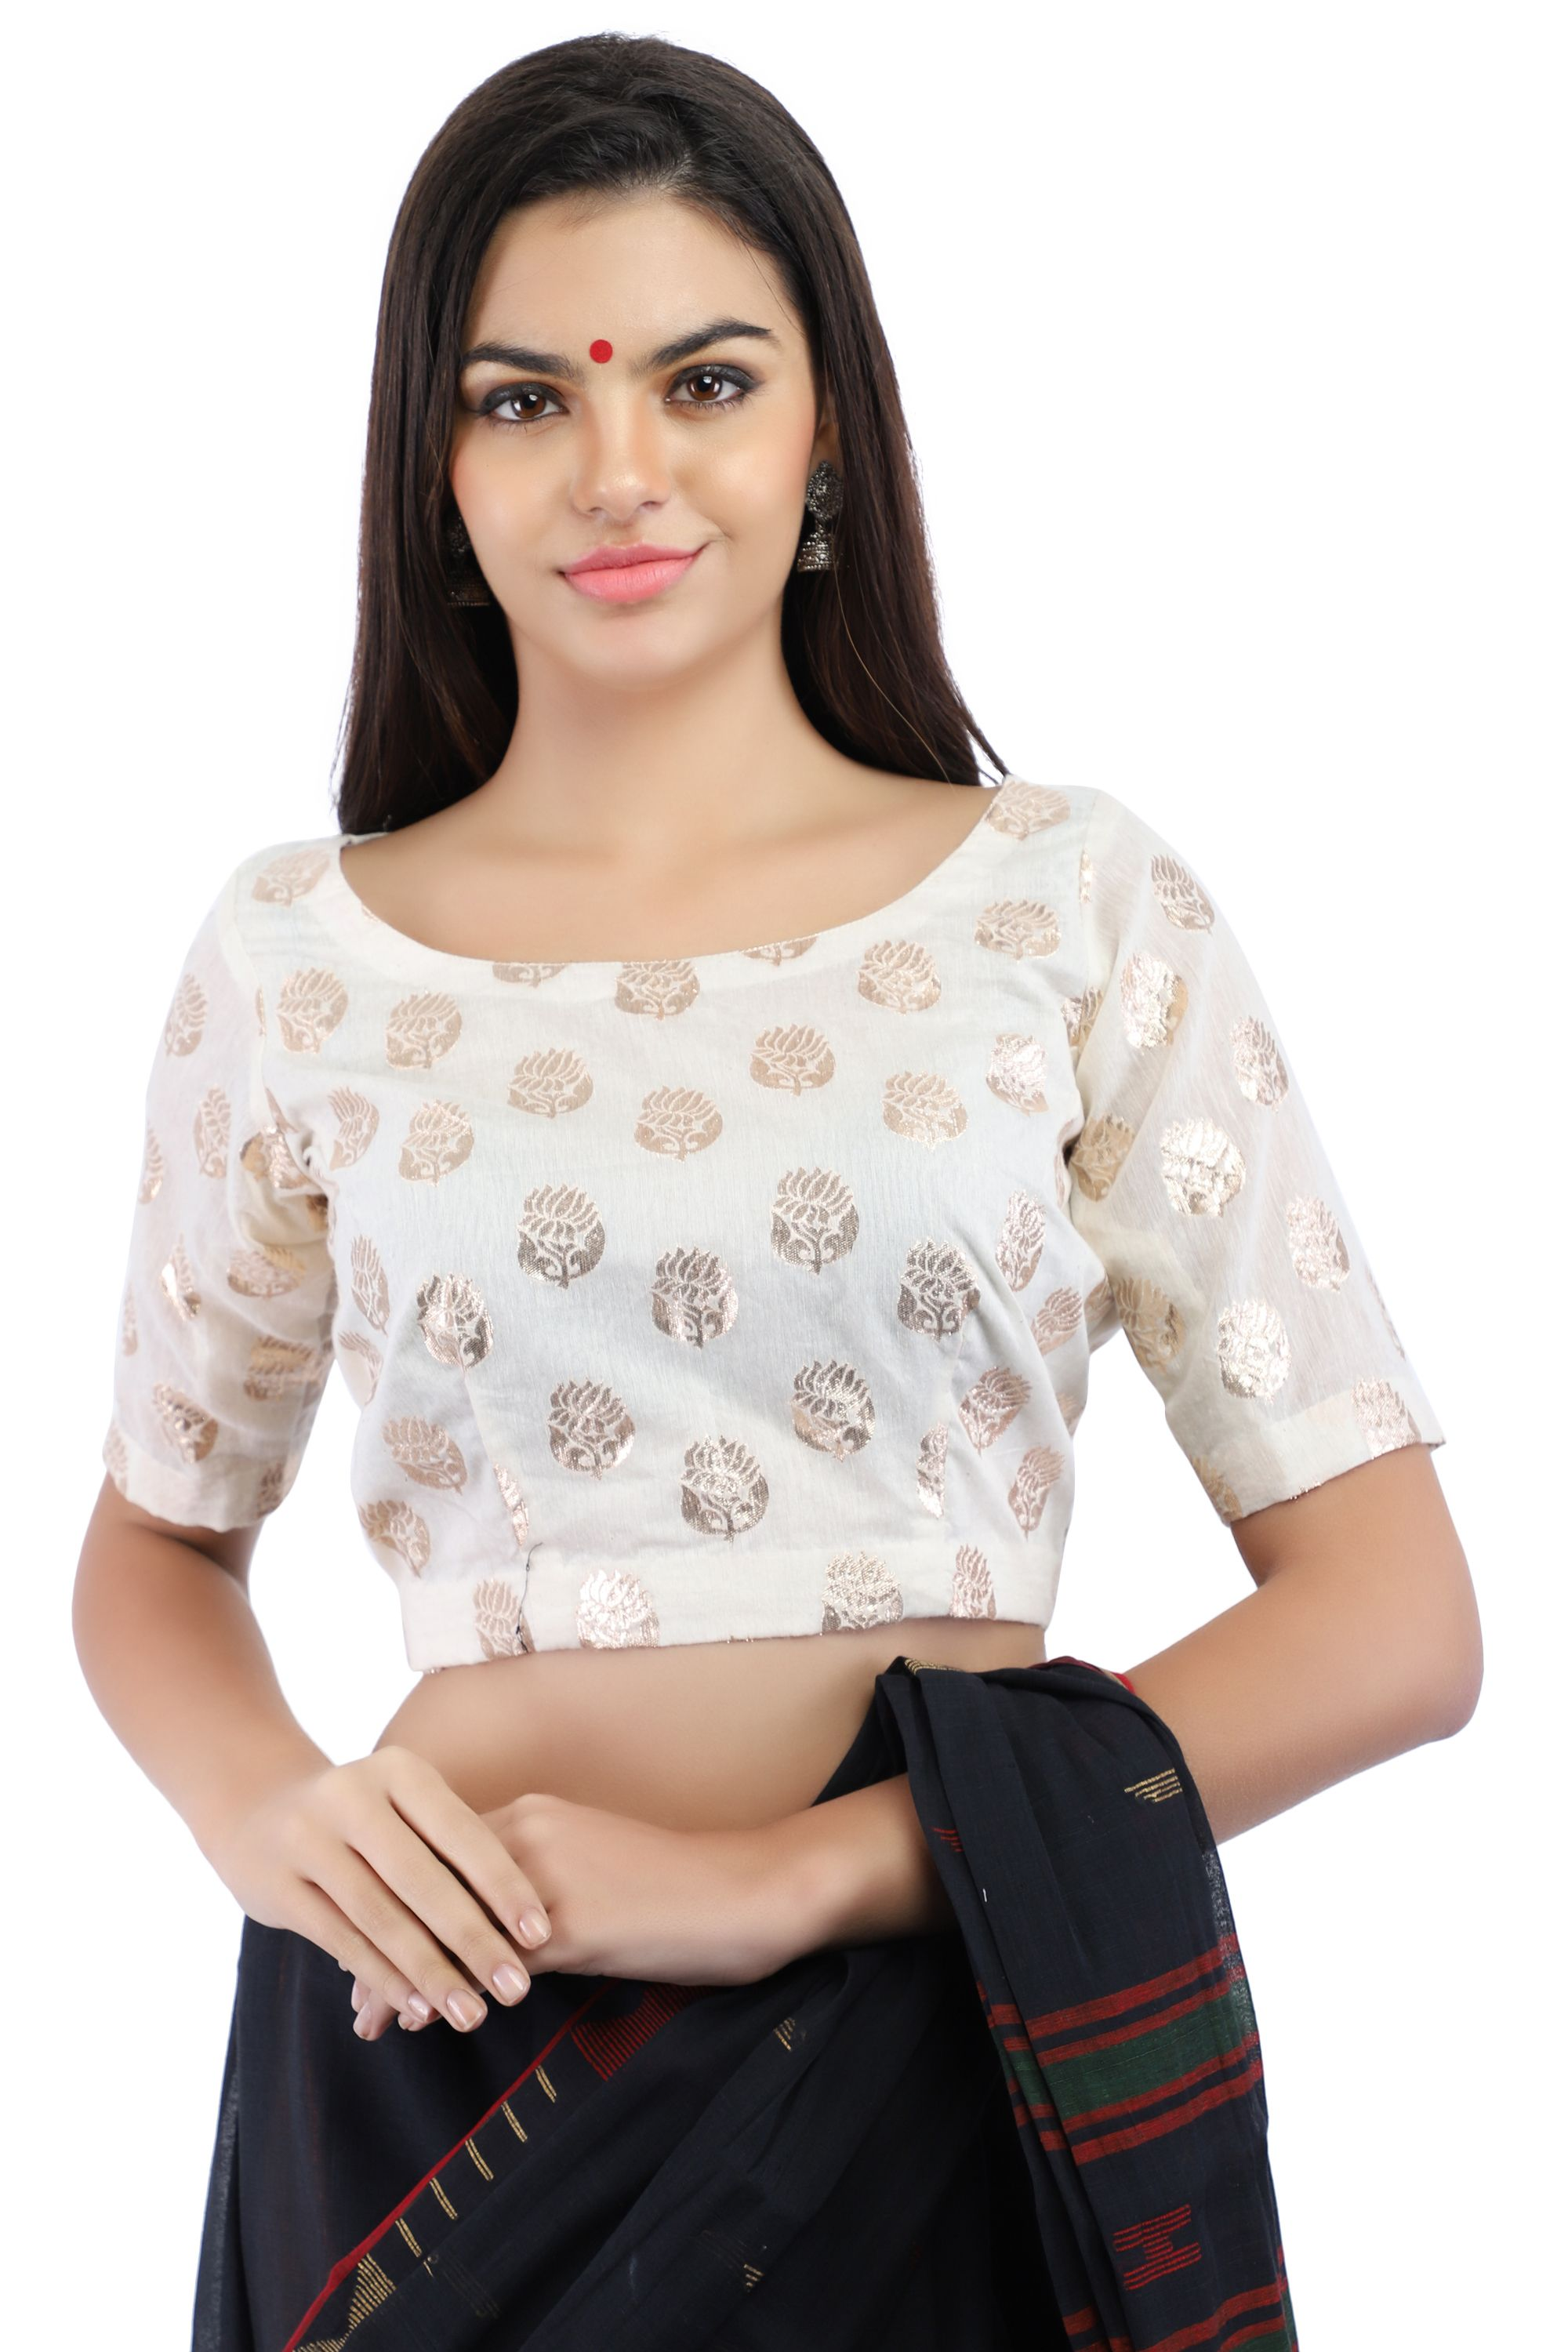 Handloom Banarasi Chanderi Brocade Non-Padded Blouse in White With Hook Closure on Back